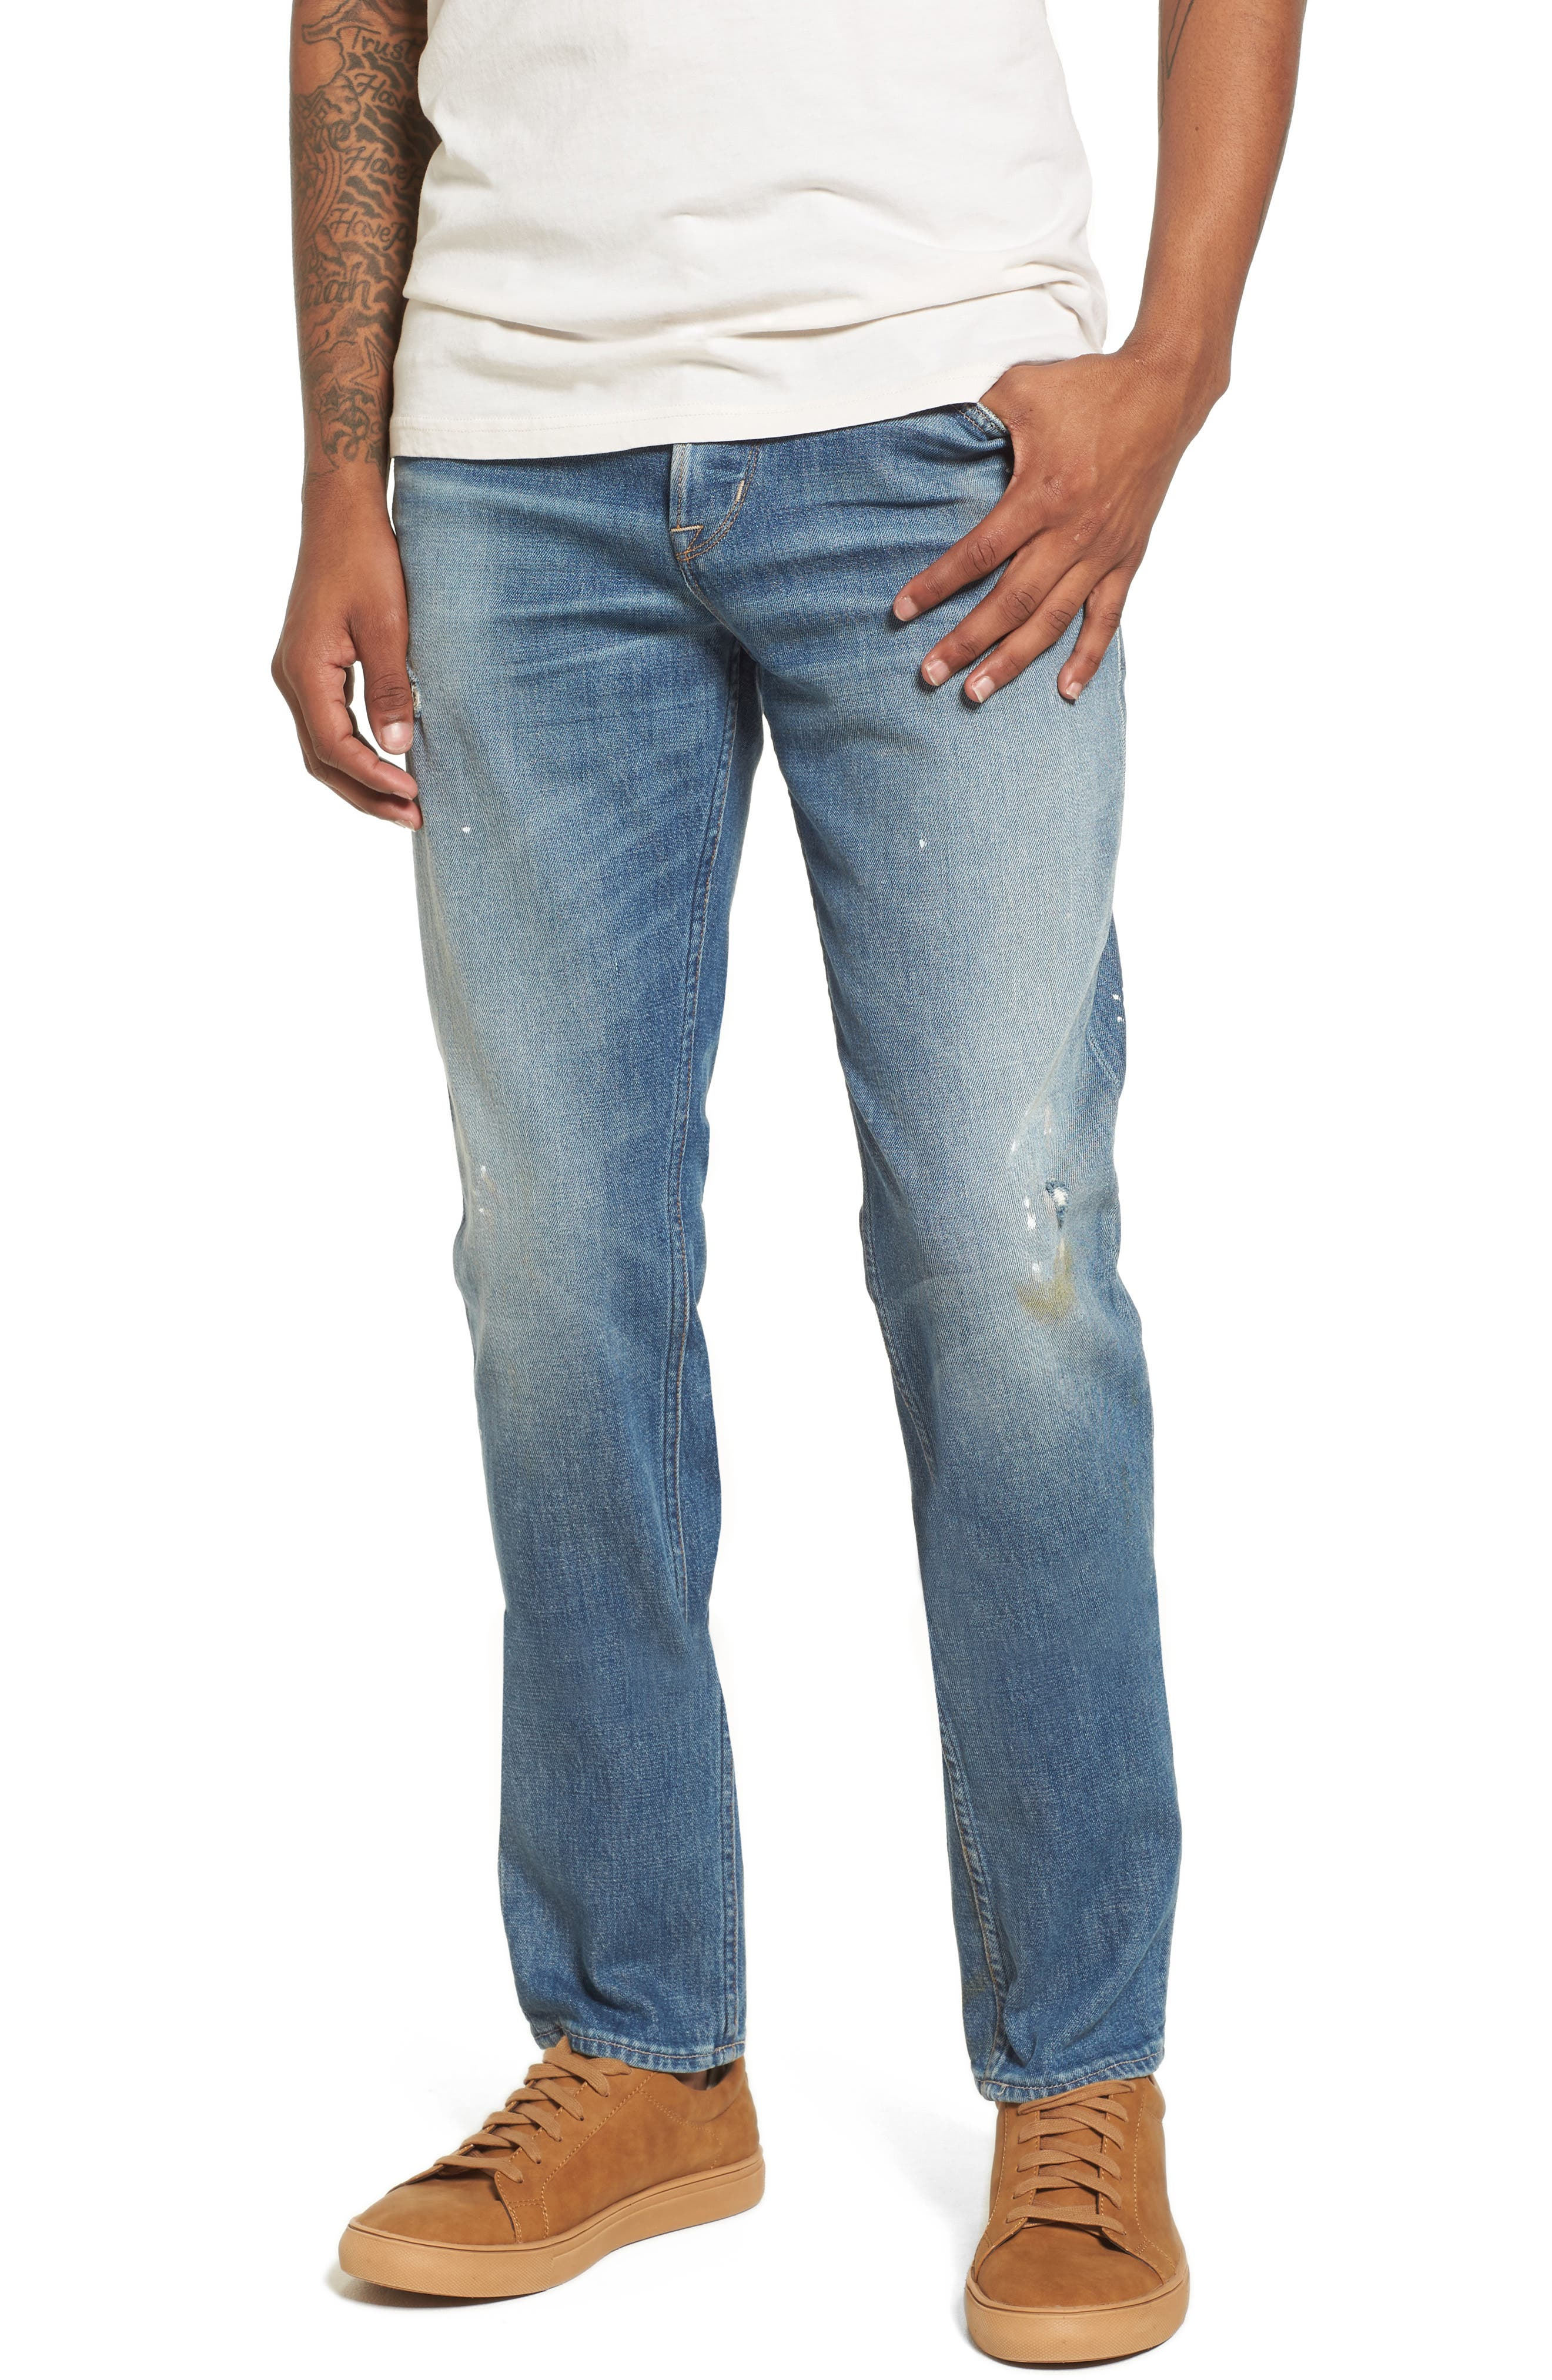 Hudson Jeans Axl Skinny Fit Jeans (Intoxicate)